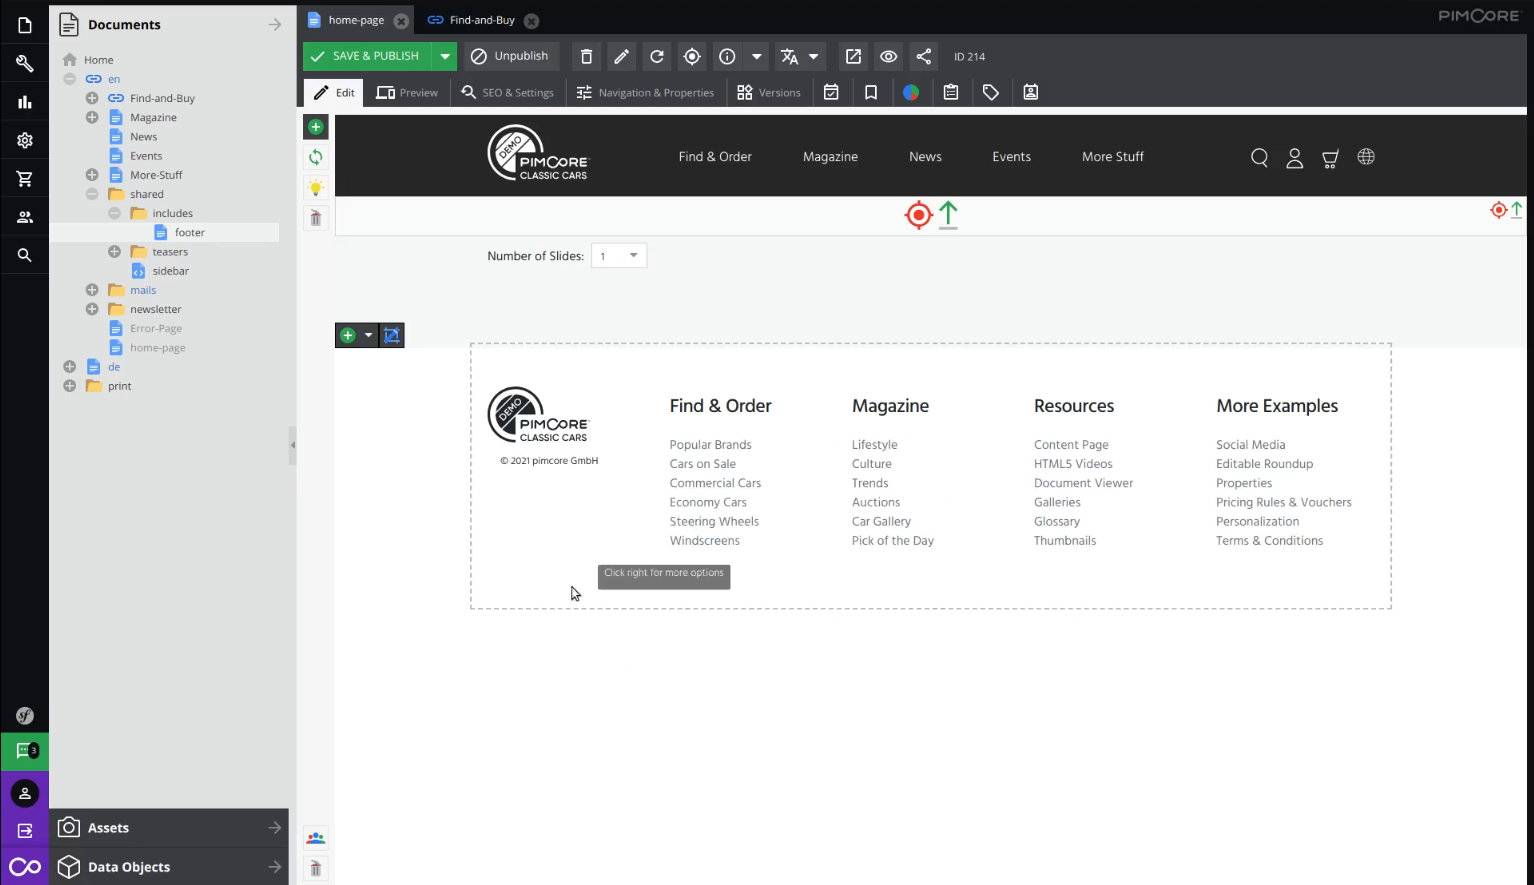 Editing footer on landing page in Pimcore